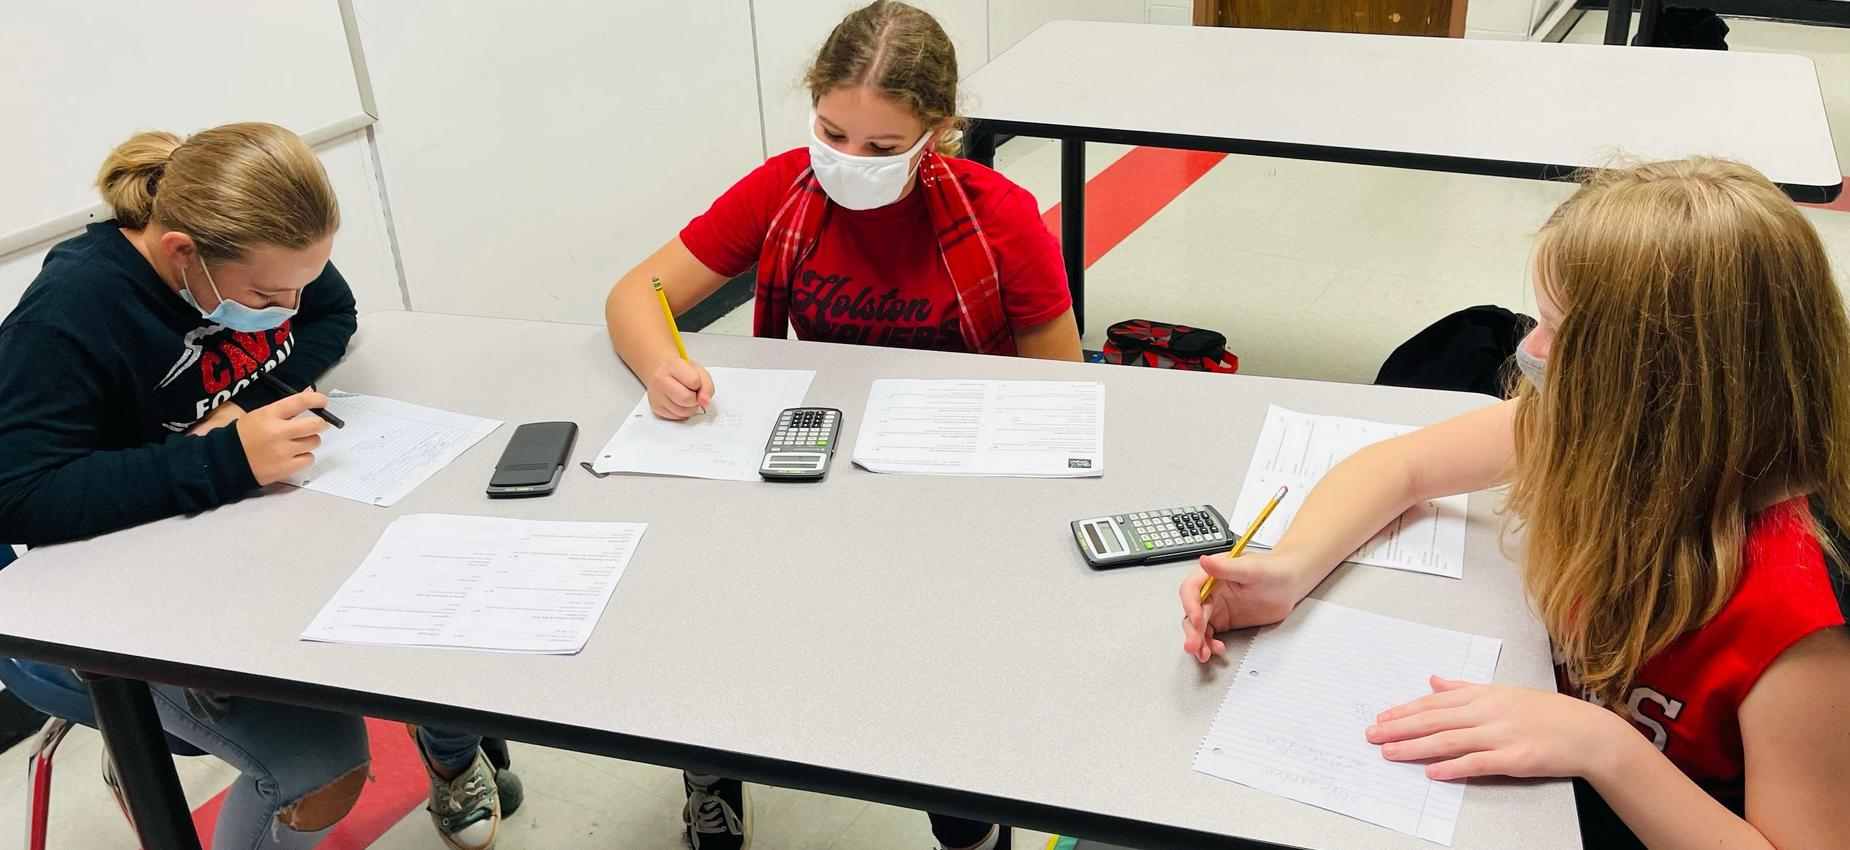 Three students work on math in a classroom.